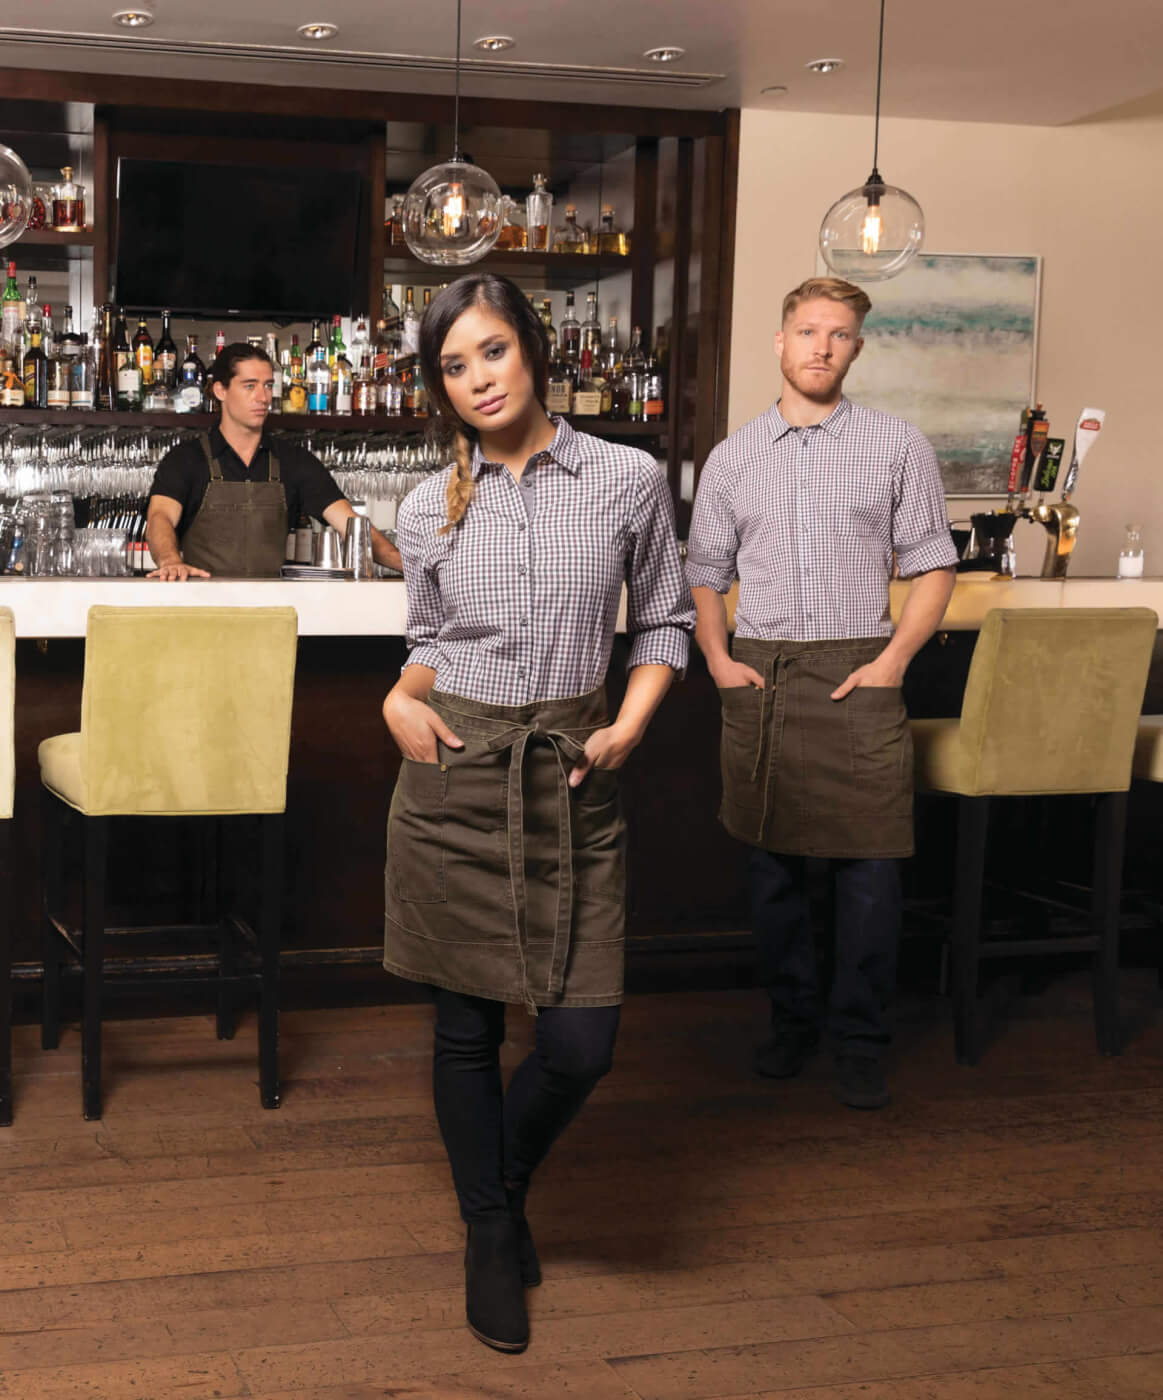 Chefworks uniform collection: two men and a woman in bar